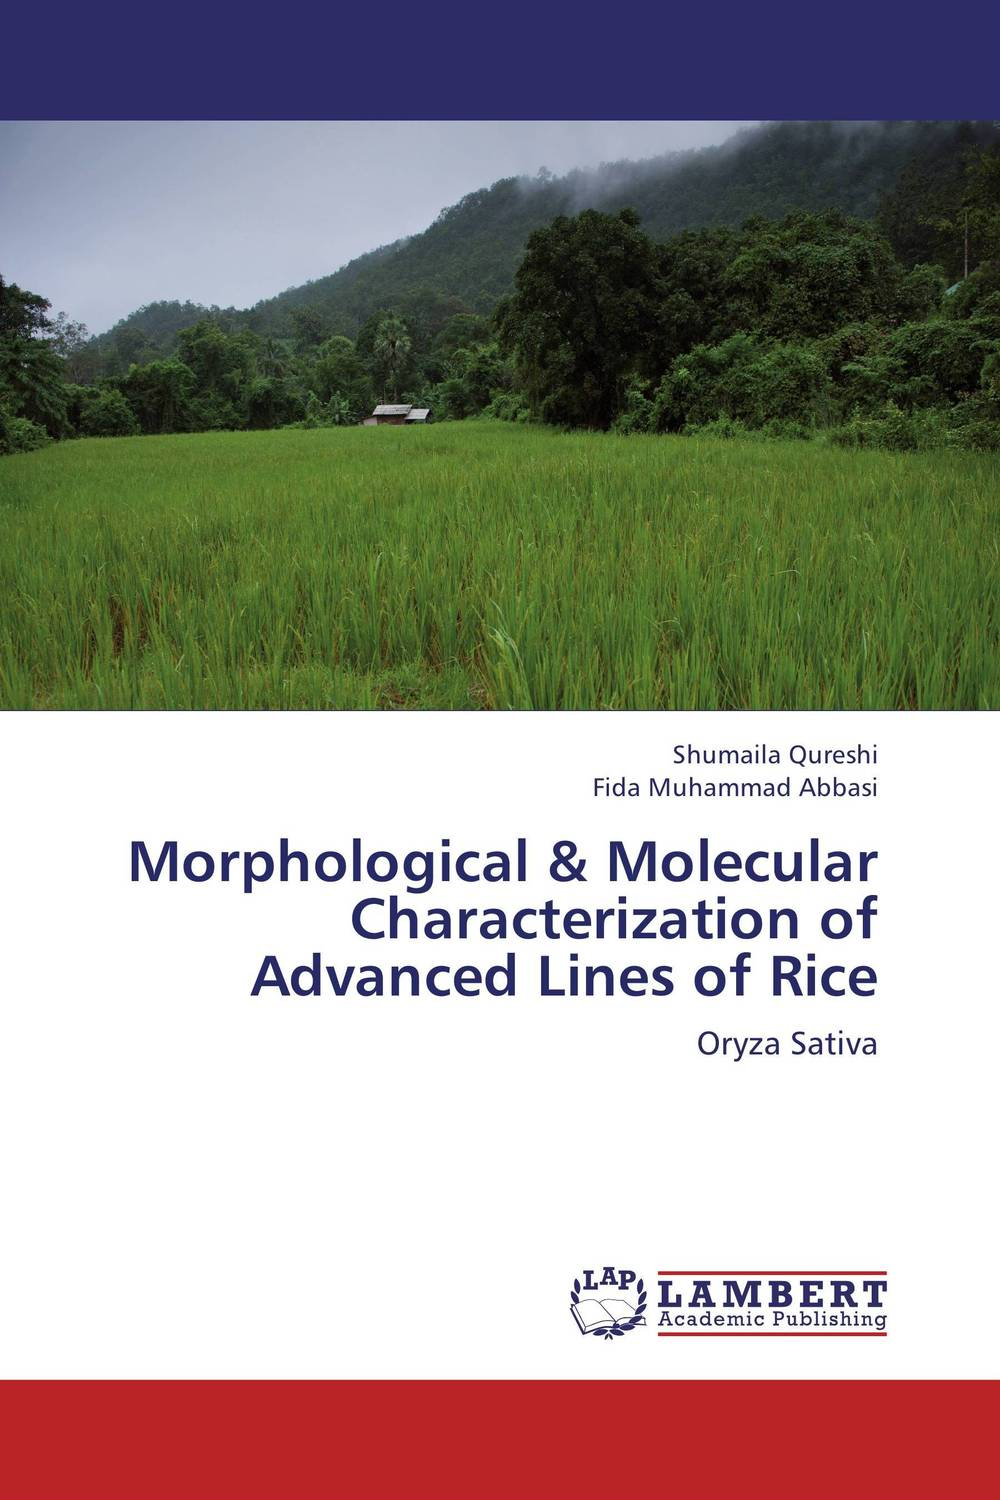 Morphological & Molecular Characterization of Advanced Lines of Rice jyoti yadav arvind kumar and lalit kumar molecular characterization of lactamase e coli and klebsiella spp